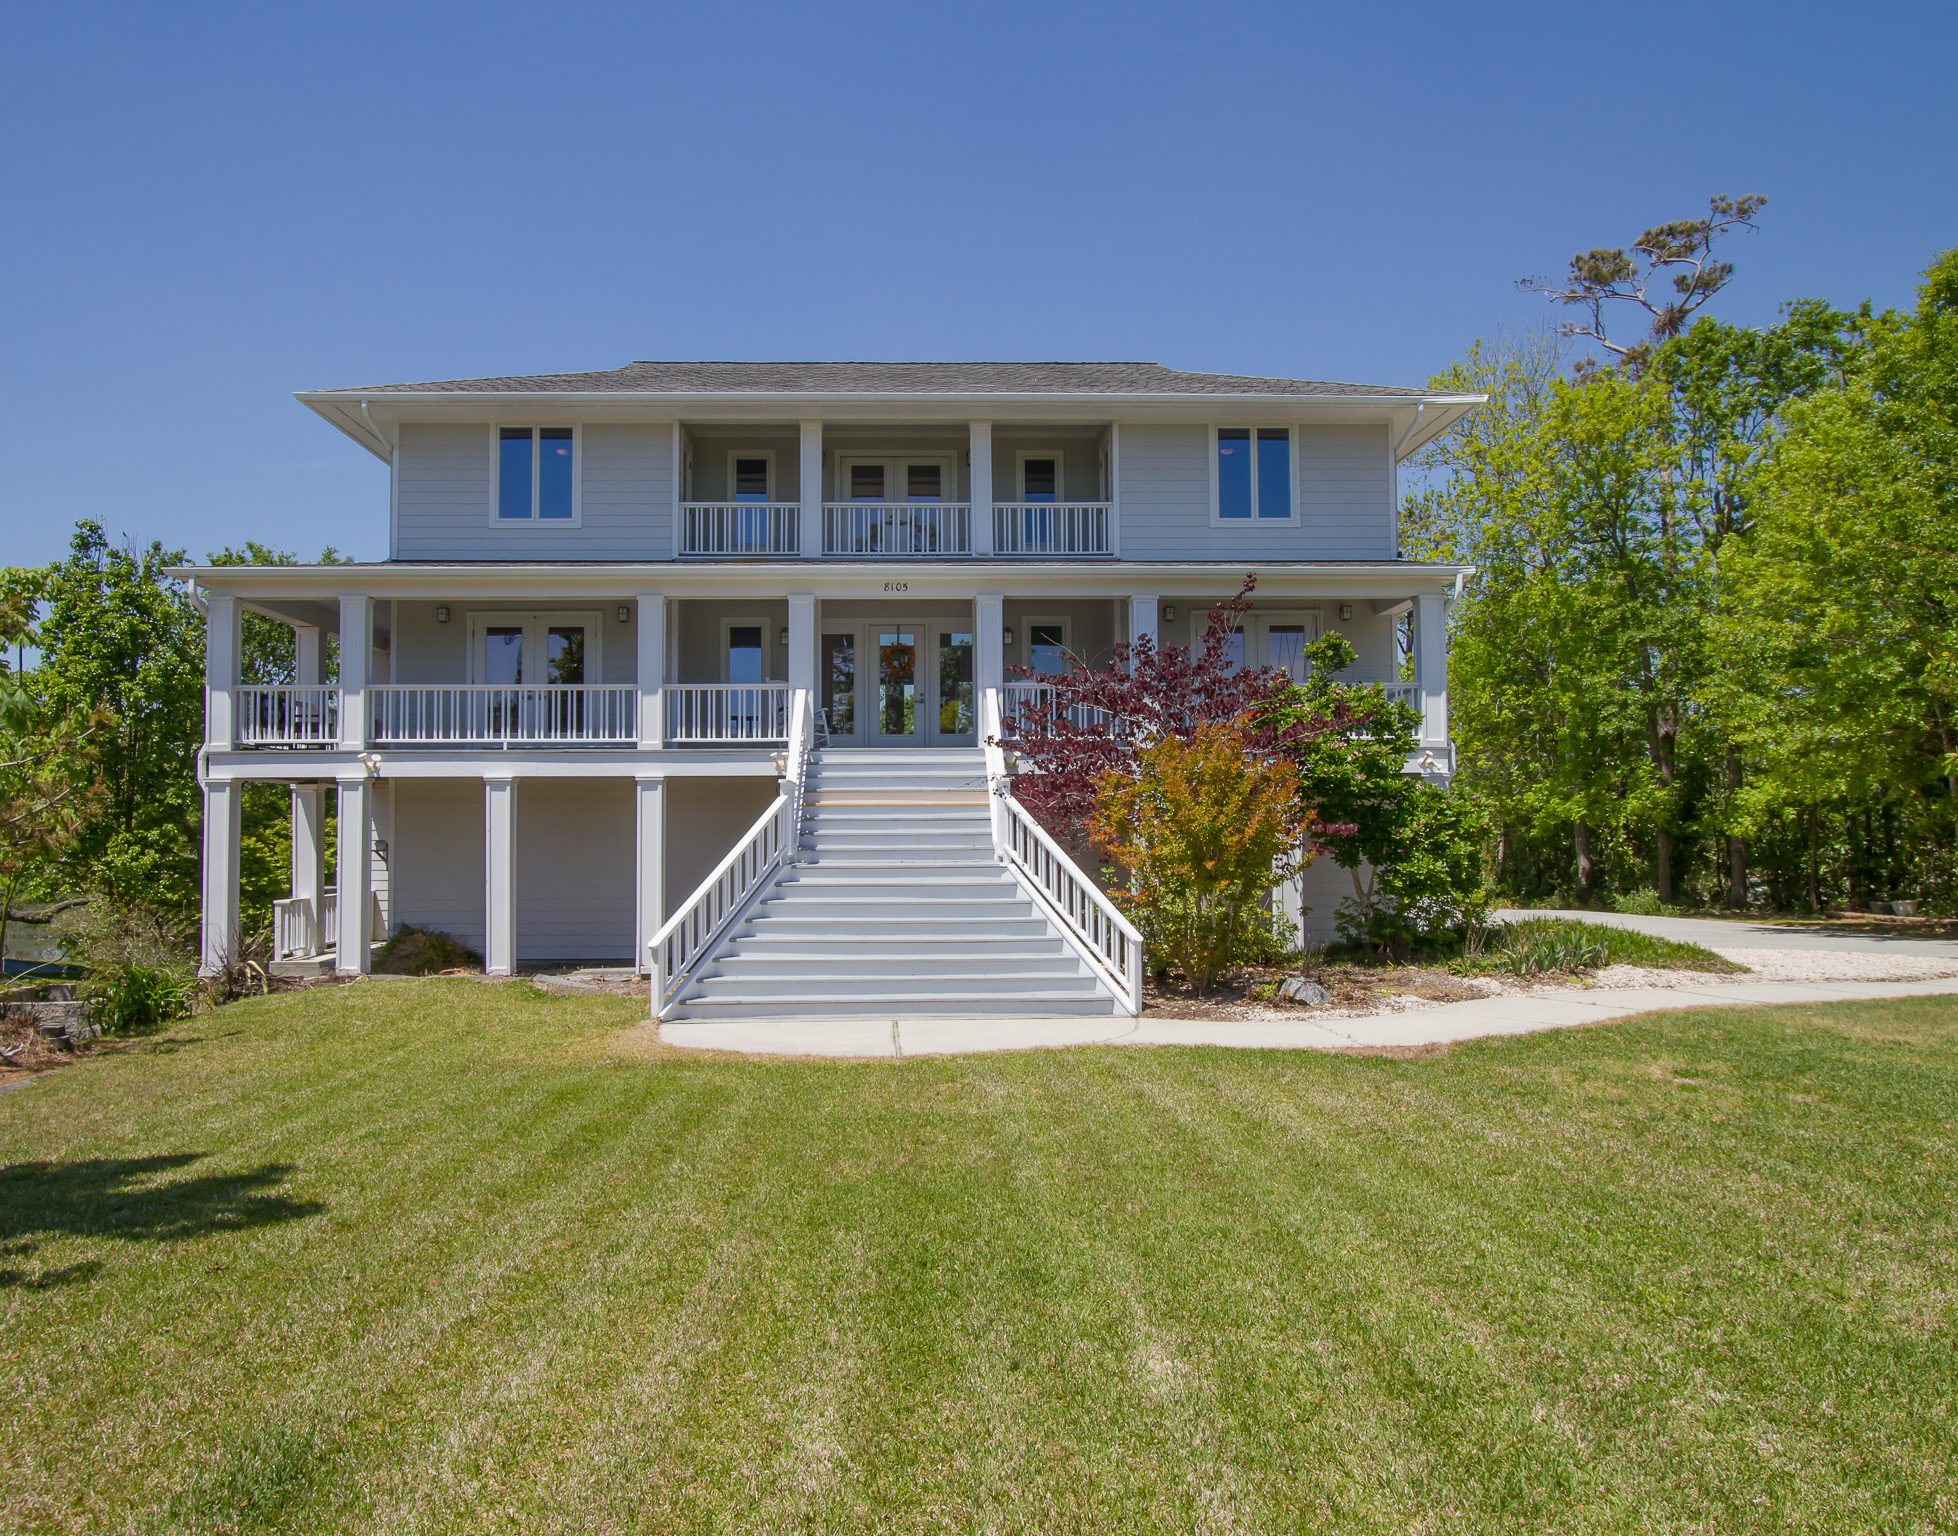 BEACH HOME IN WILMINGTON, NC INLAND WATERWAY ACCESS